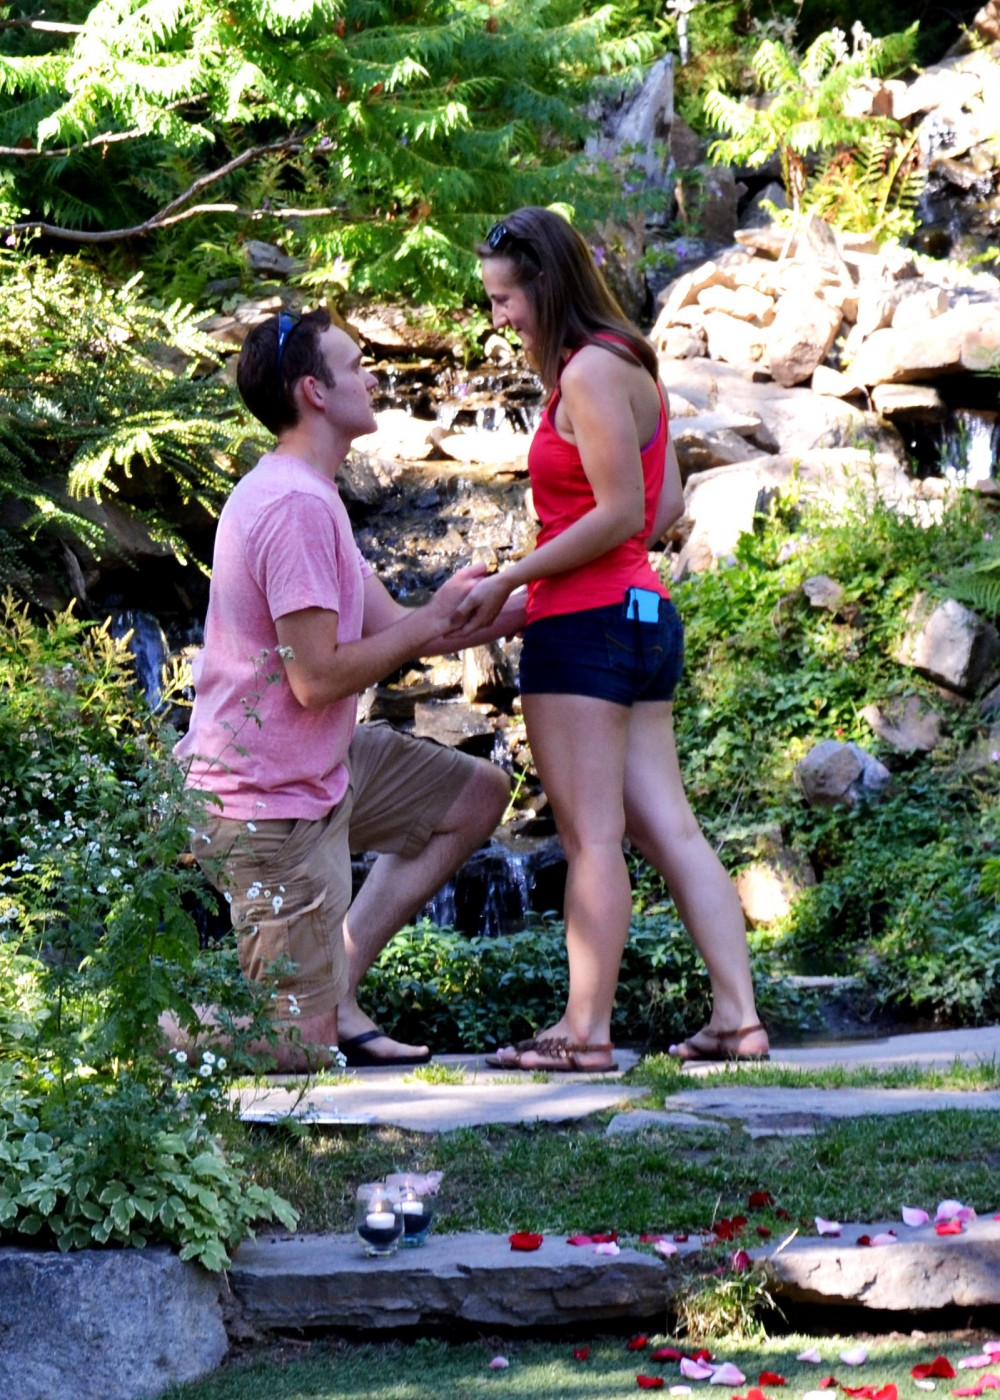 Image 2 of Marcy and Evan